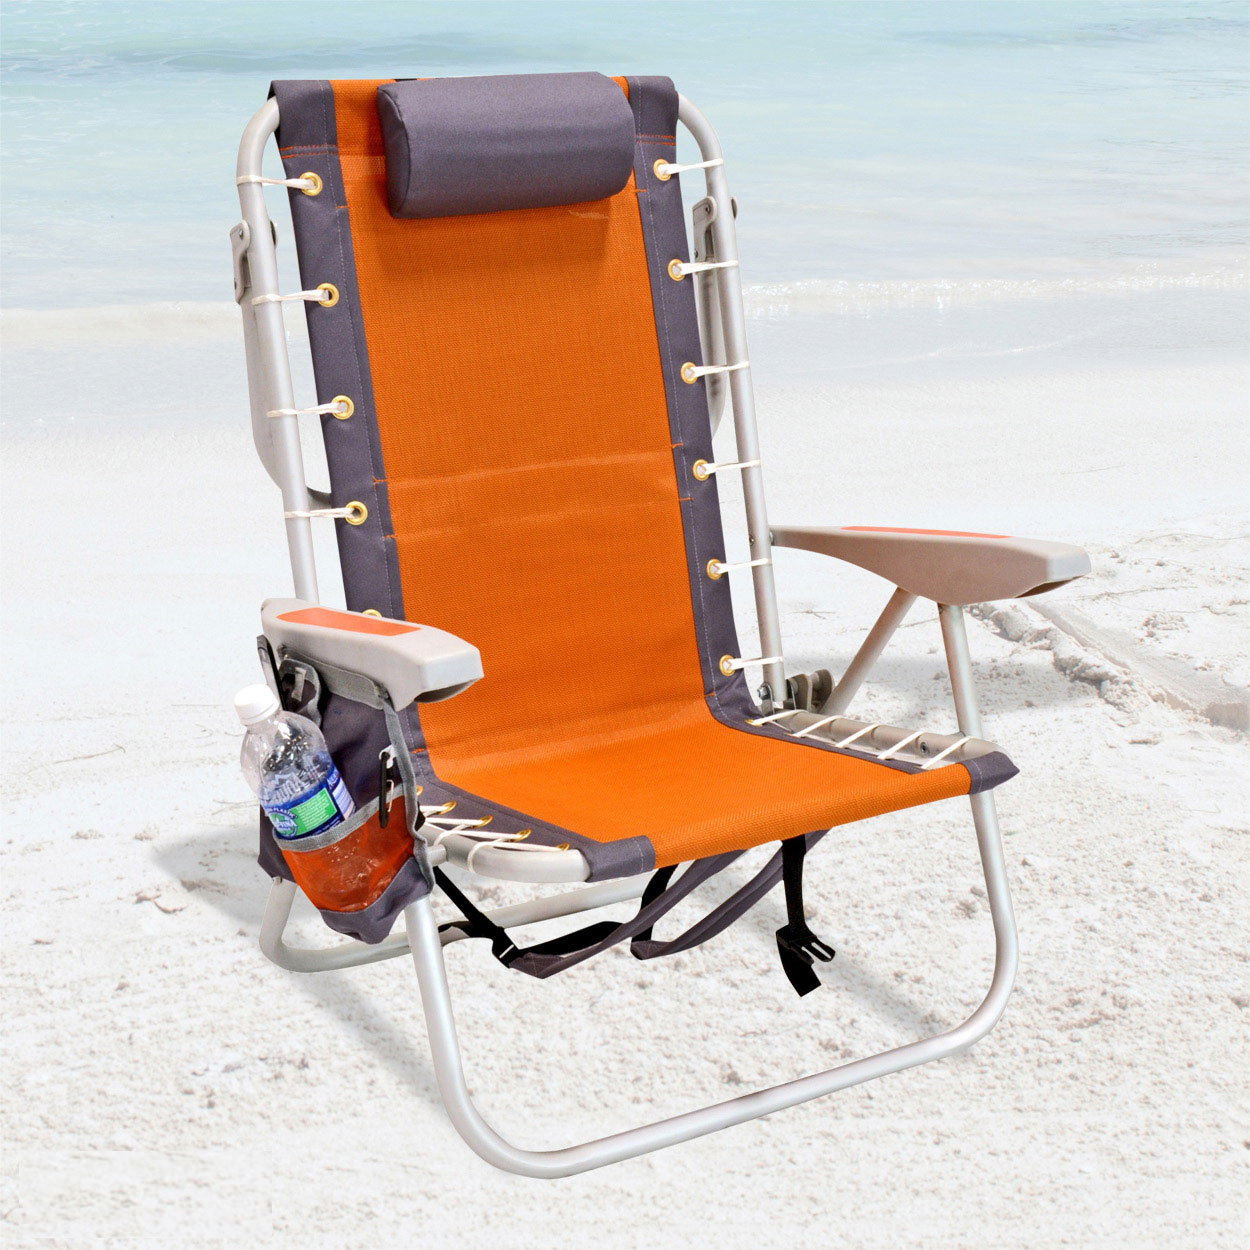 Beach Backpack Chair Rio 5 Pos Layflat Ultimate Backpack Beach Chair W Cooler